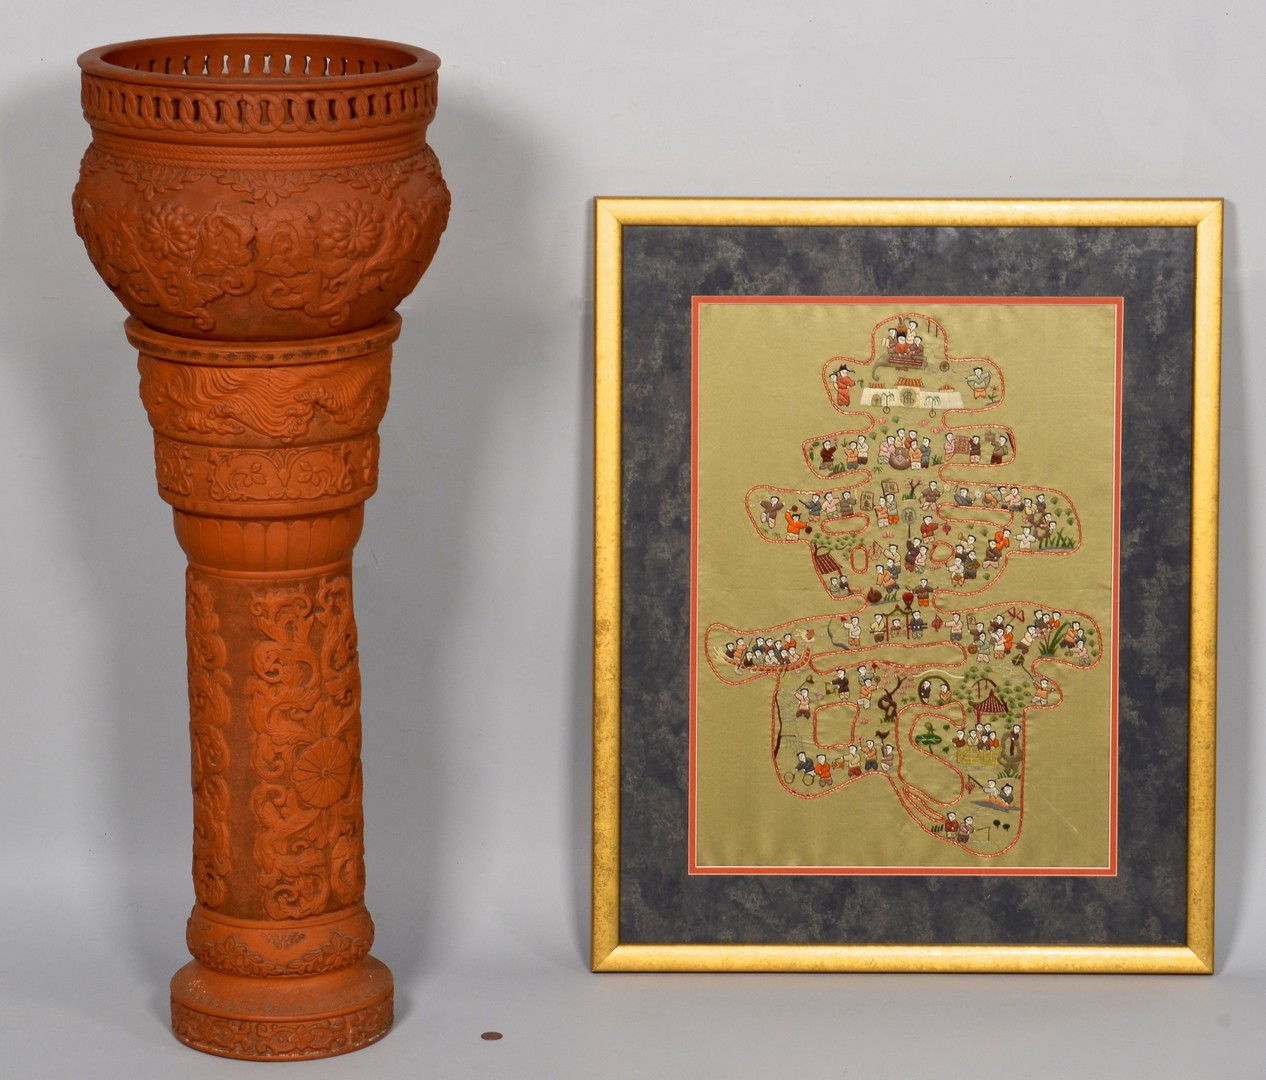 Lot 3832429: Chinese Yixing Plant Stand & Embroidery